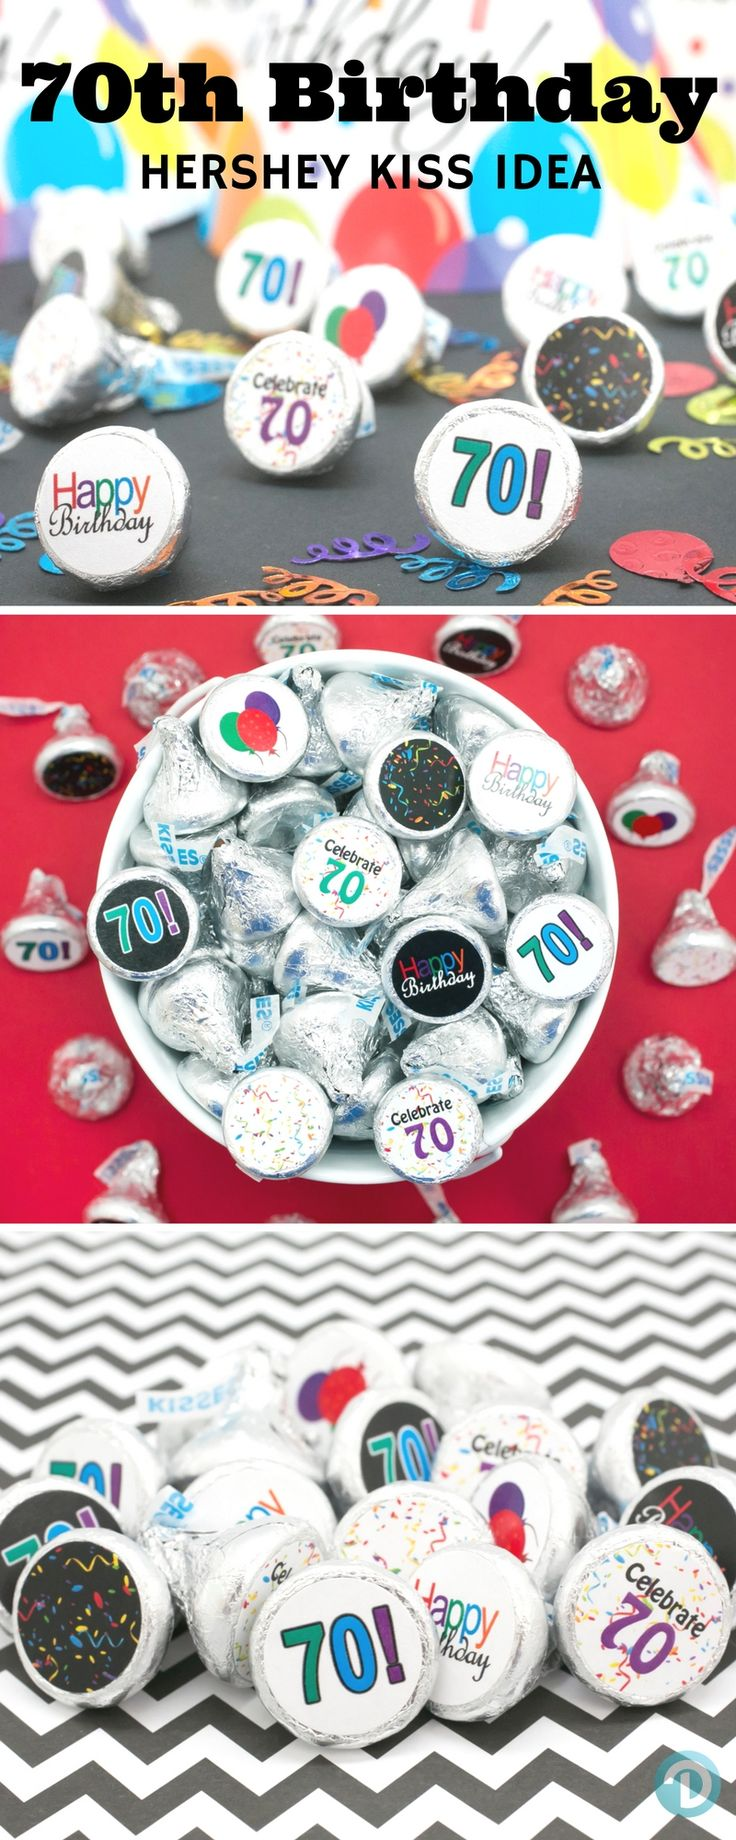 Create memories with these Happy 70th Birthday Favor stickers by simply peeling and stick on Hershey Kisses for a simple and easy party favor or table decoration everyone will enjoy!